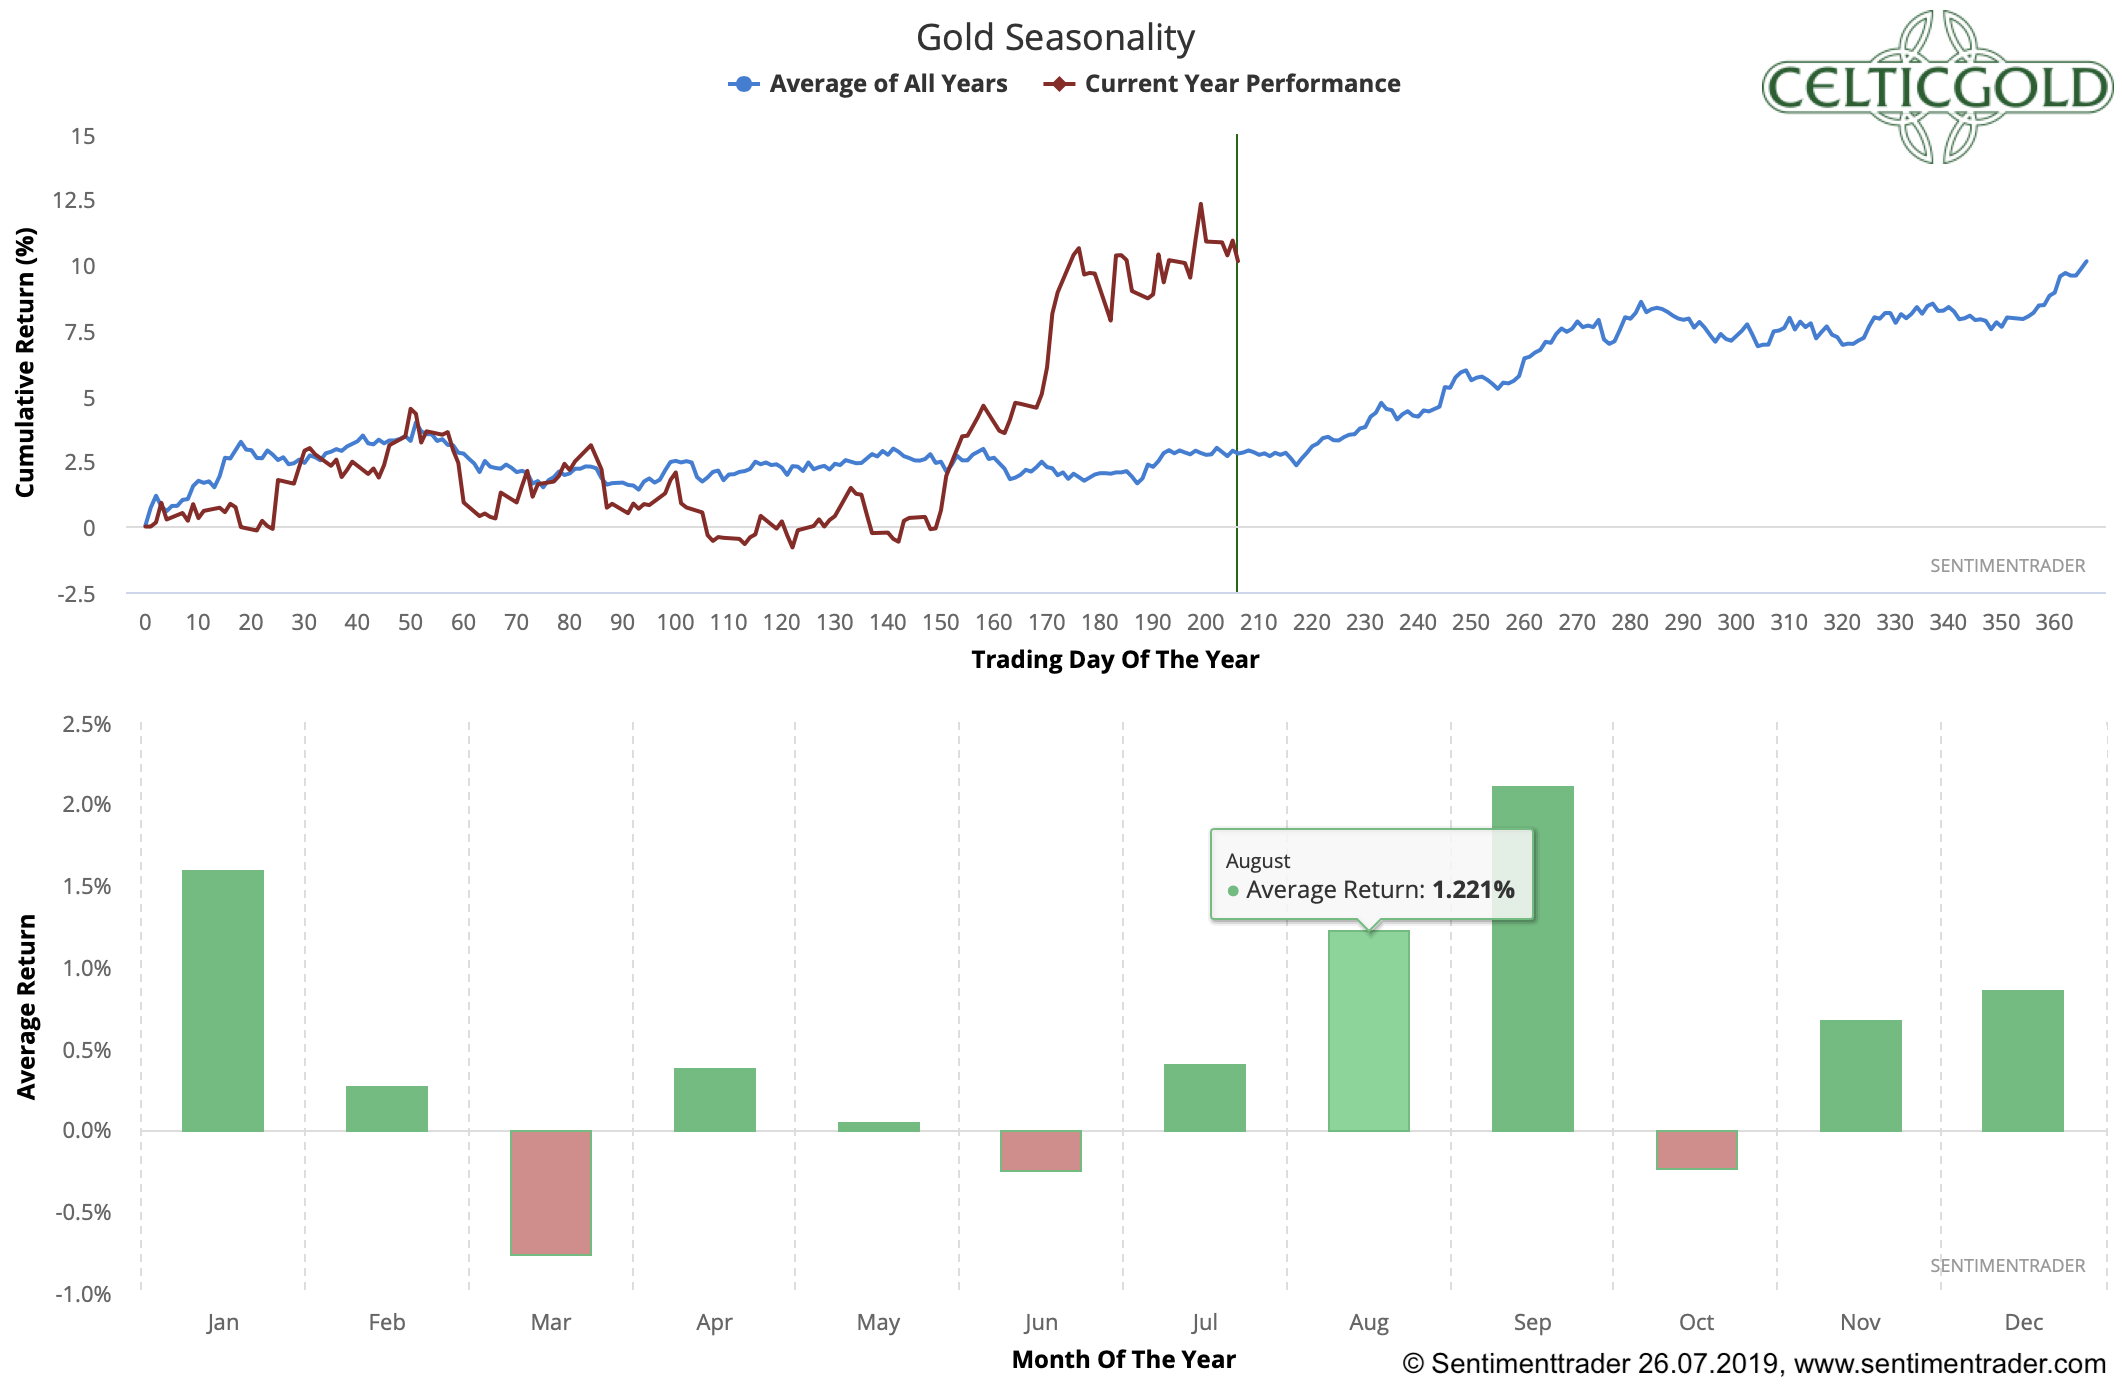 Seasonality for Gold as of July 26th, 2019. Source: Sentimentrader